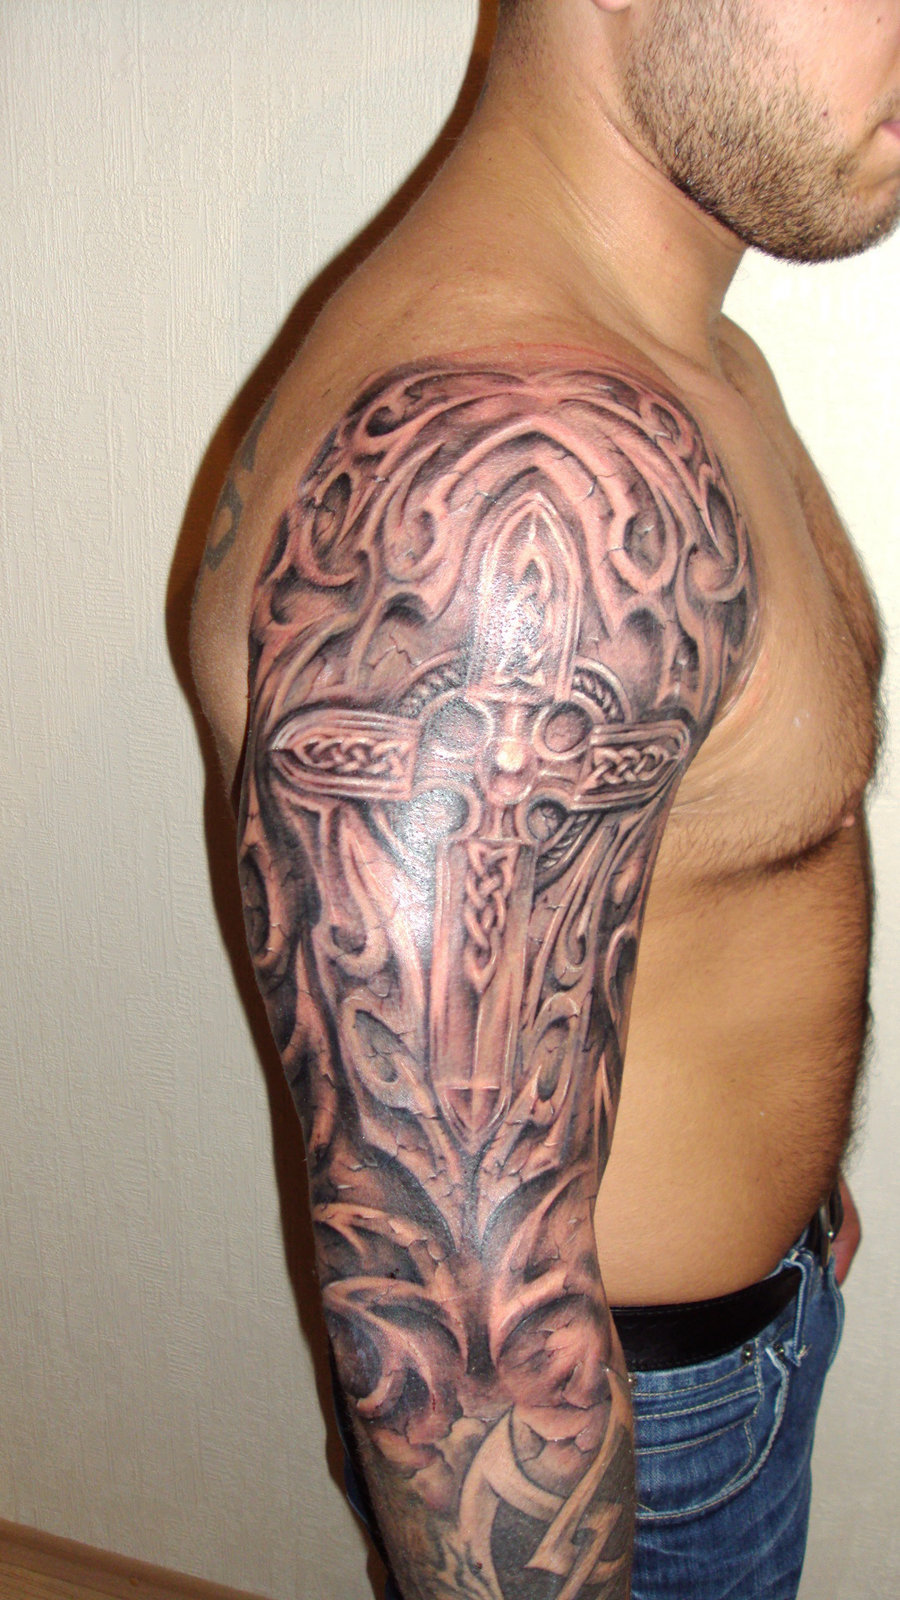 Cross Tattoos Designs, Ideas and Meaning | Tattoos For You